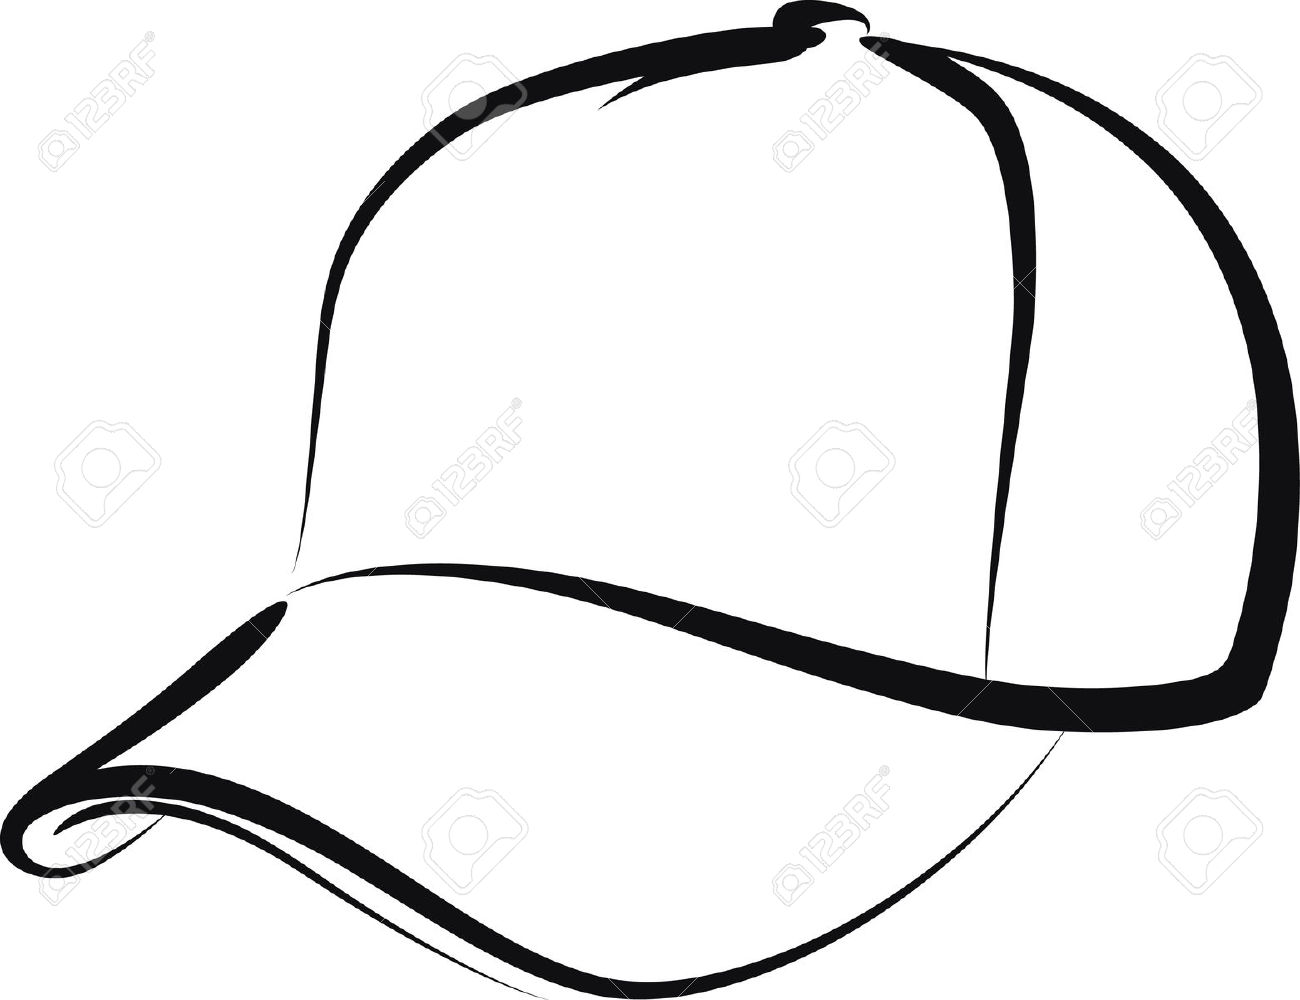 Basecap clipart banner freeuse Baseball Cap Clipart | Free download best Baseball Cap Clipart on ... banner freeuse